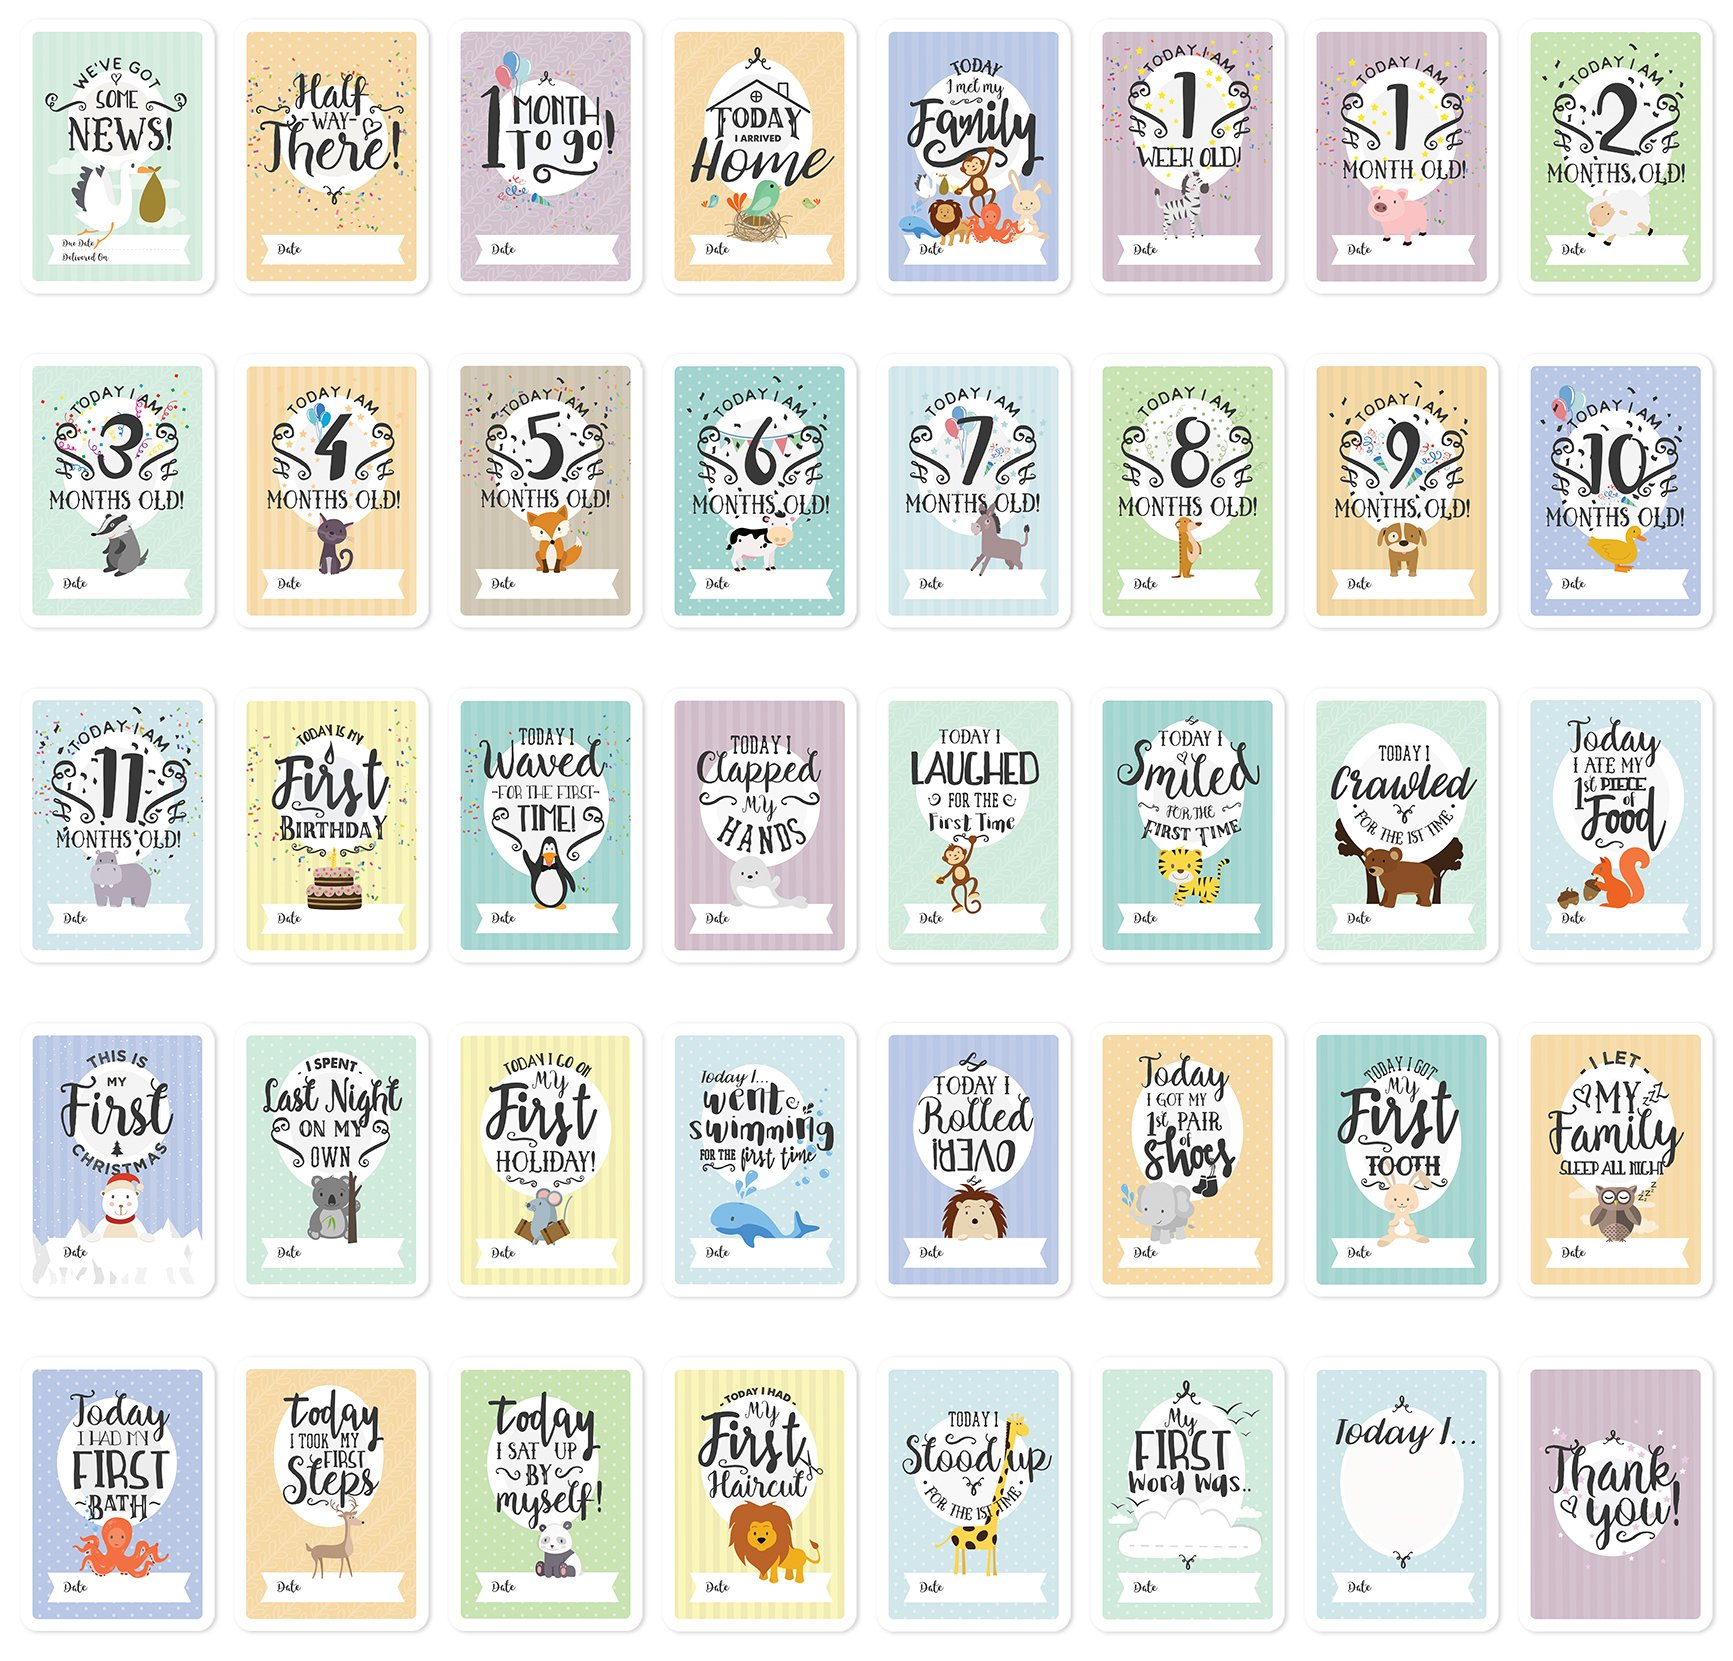 Baby Milestone Cards & Keepsake Box – 40 unisex landmark moment photo cards including pregnancy & key age markers– Perfect baby shower gift set with original pastel coloured designs by COZY HEDGEHOG 3